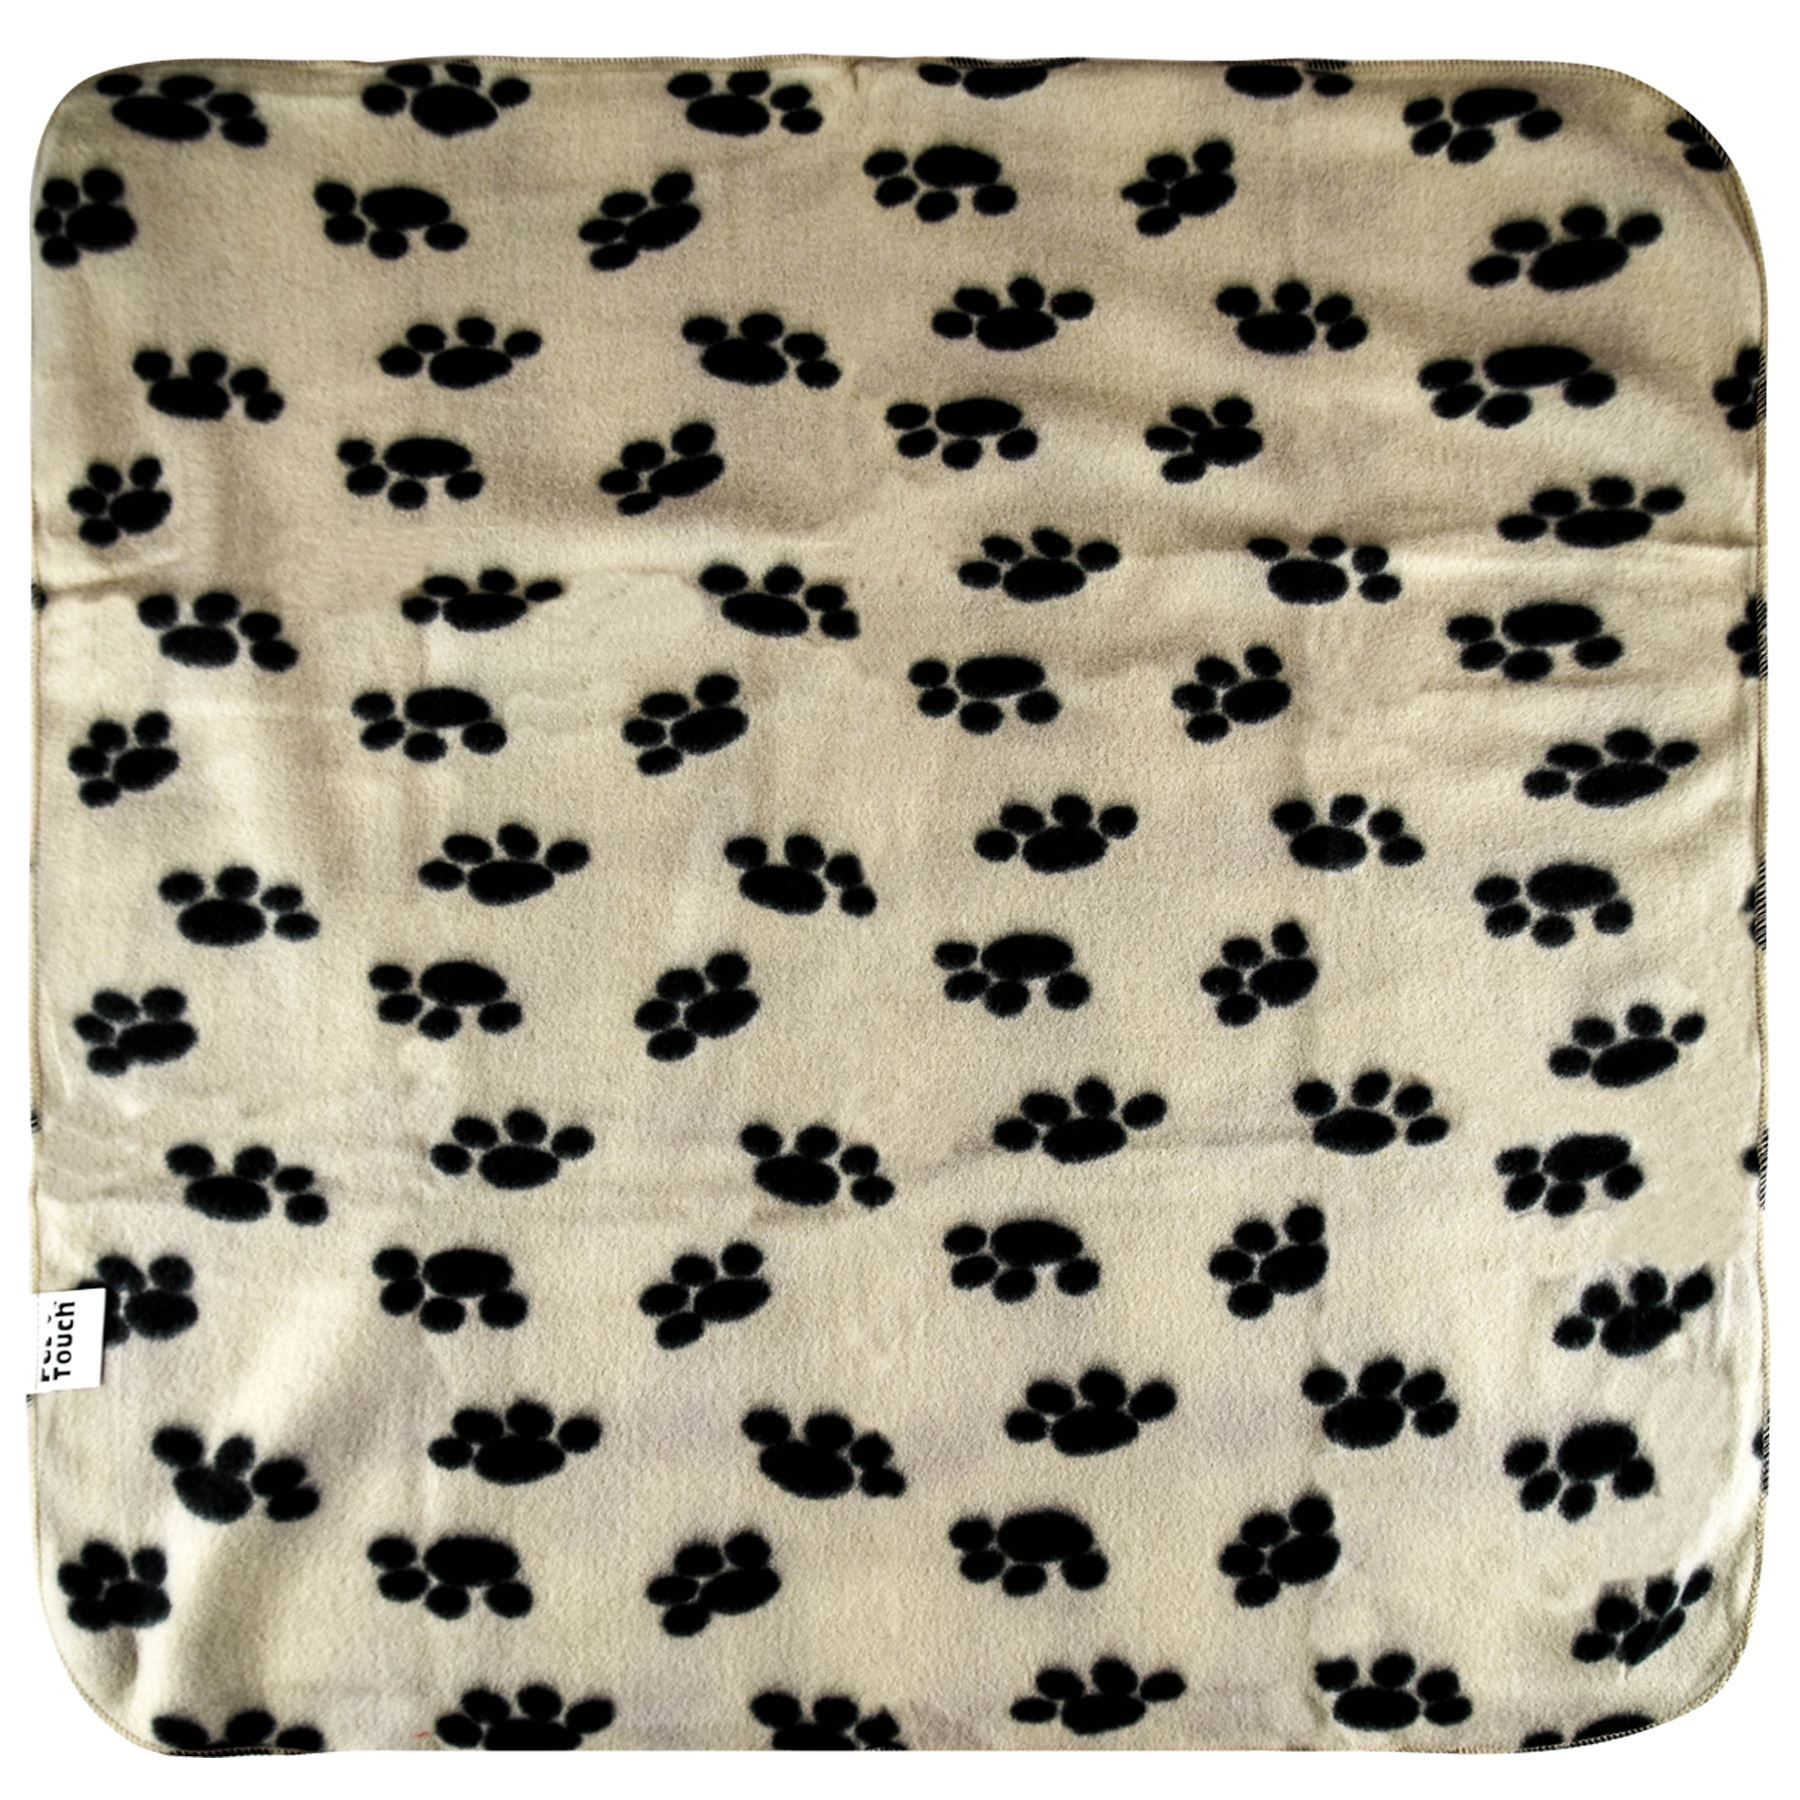 Pet-Blanket-Dogs-amp-Puppy-Cat-Paw-Print-Soft-Warm-Fleece-Bed-Travel-Basket-Car thumbnail 8